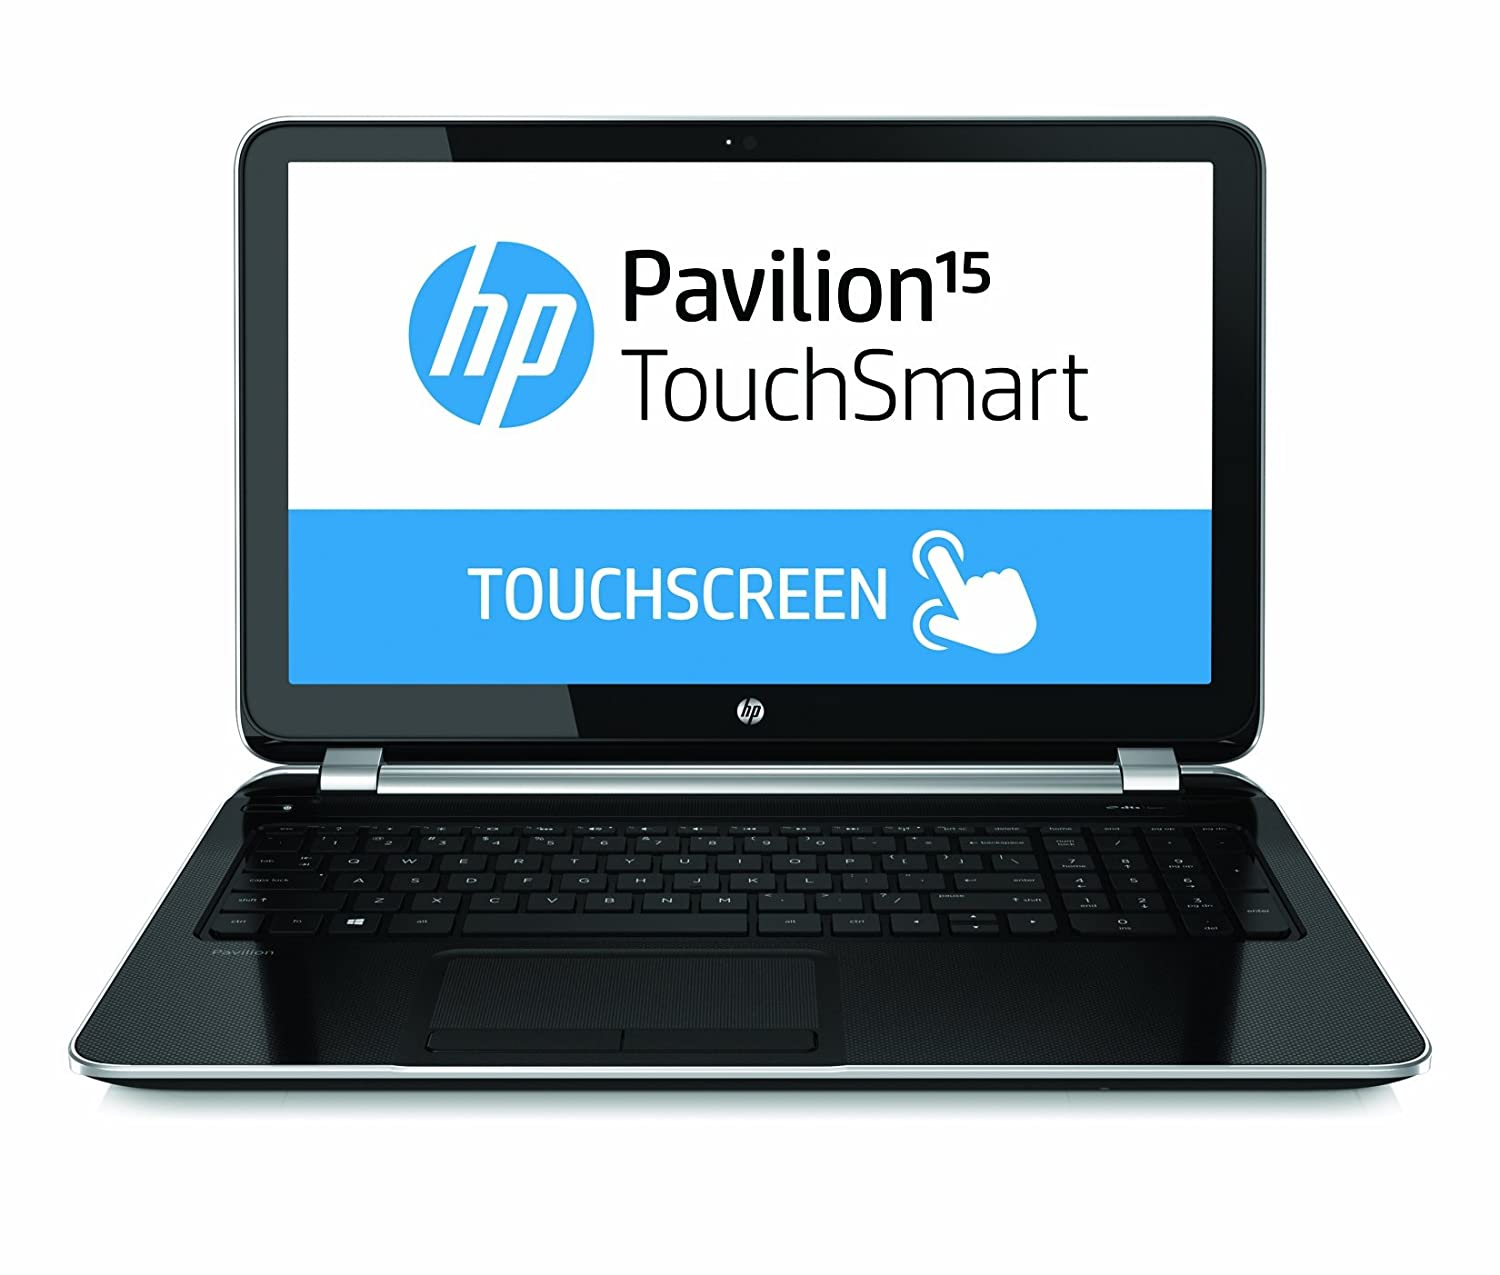 HP Pavilion 15-n220us 15.6-Inch Touchsmart Laptop